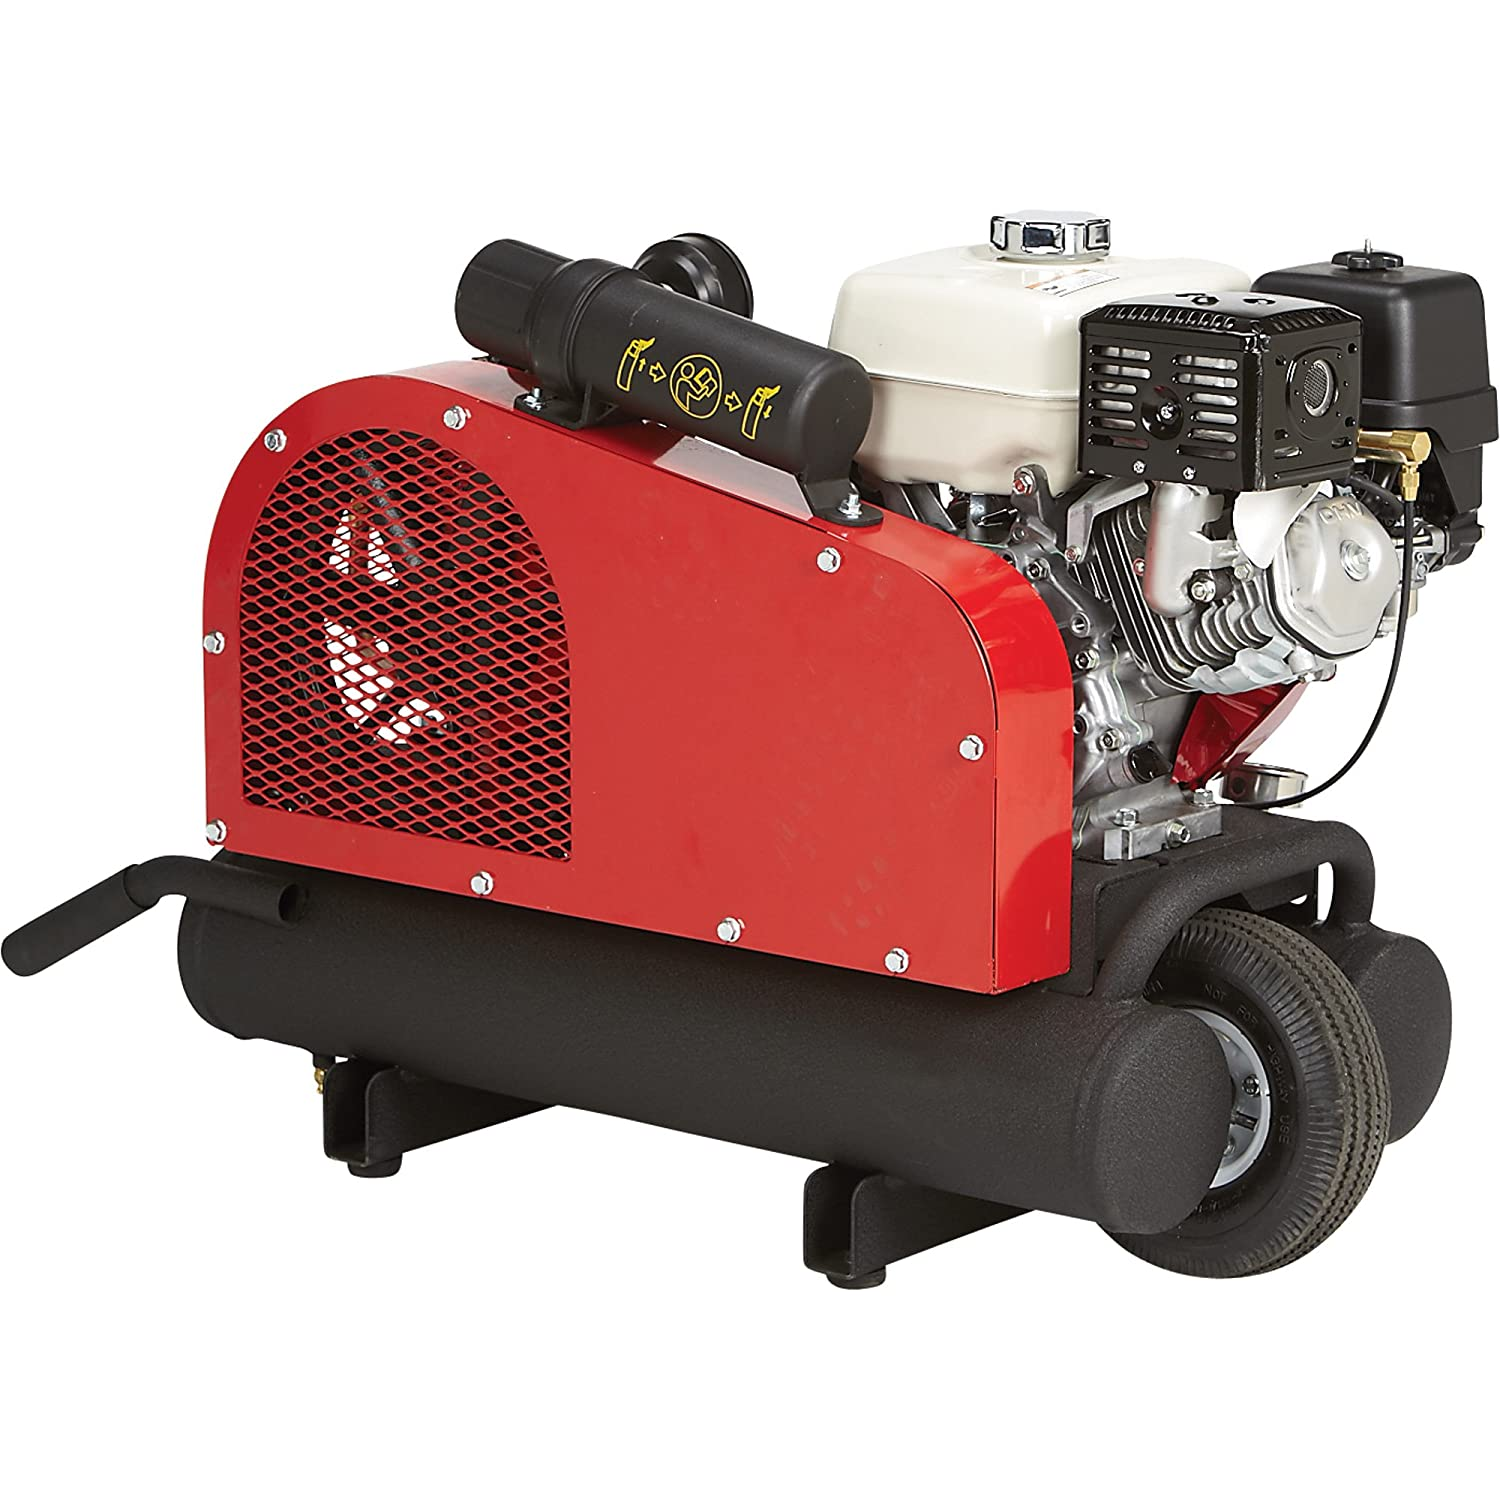 small gas powered air compressor. amazon.com: - northstar gas-powered air compressor honda gx270 ohv engine, 8-gallon twin tank, 14.9 cfm @ 90 psi: home improvement small gas powered